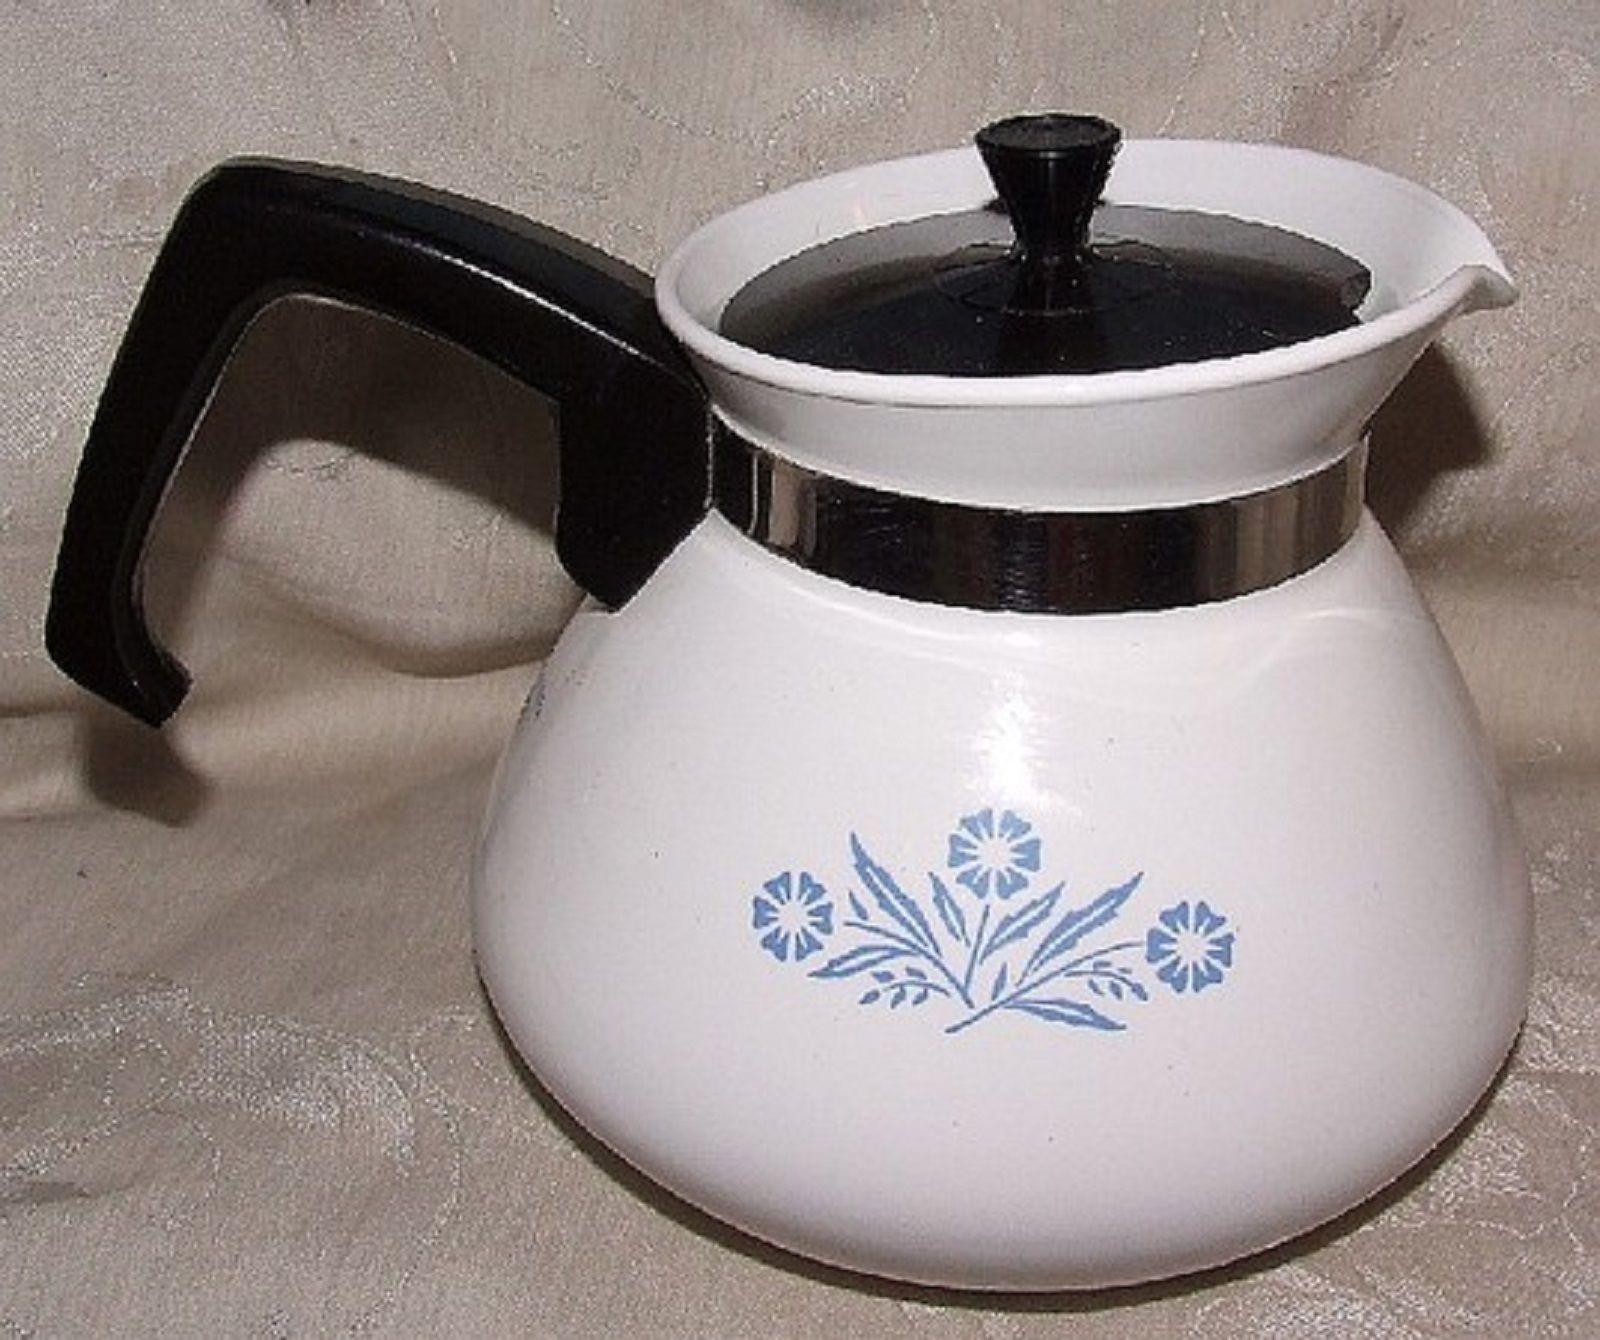 Primary image for P-104 CORNING Cornflower Blue 6 Cup Teapot Tea Pot FINE Original Black Lid